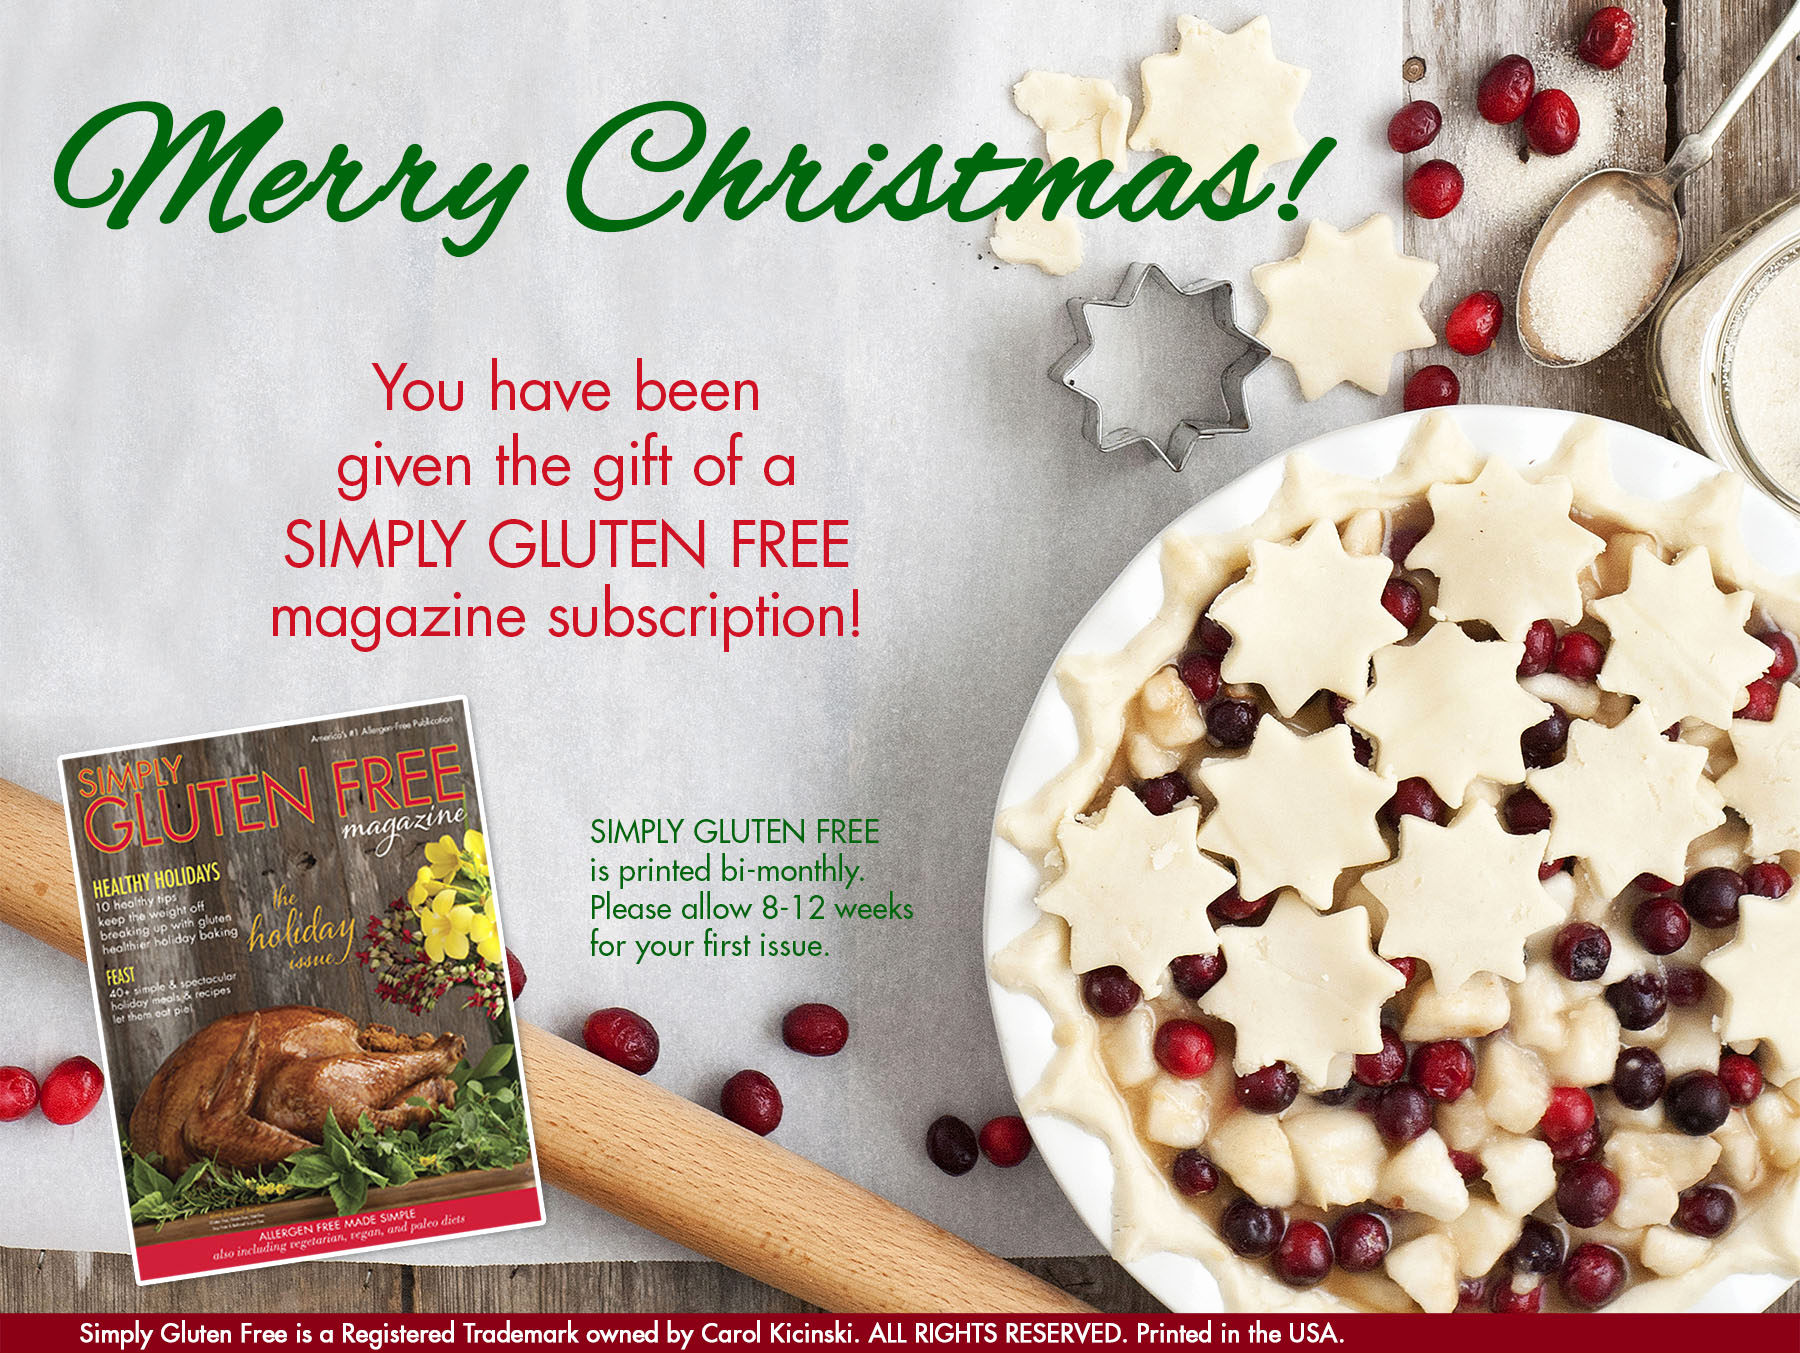 Magazine Subscription Gift Certificate Template Best Of Printable Gift Cards for Magazine Subscriptions